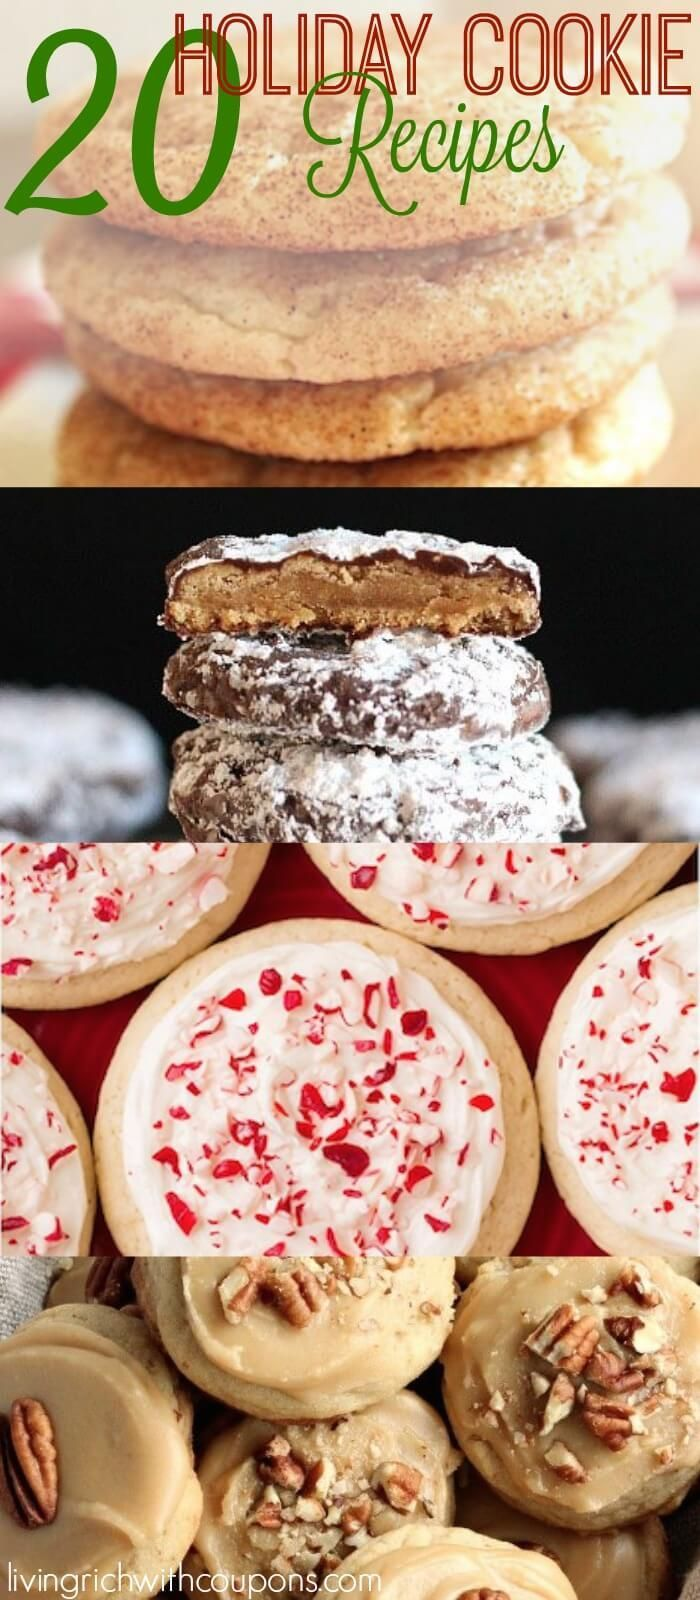 15 Christmas Cookie Exchange Recipes to Make With Your